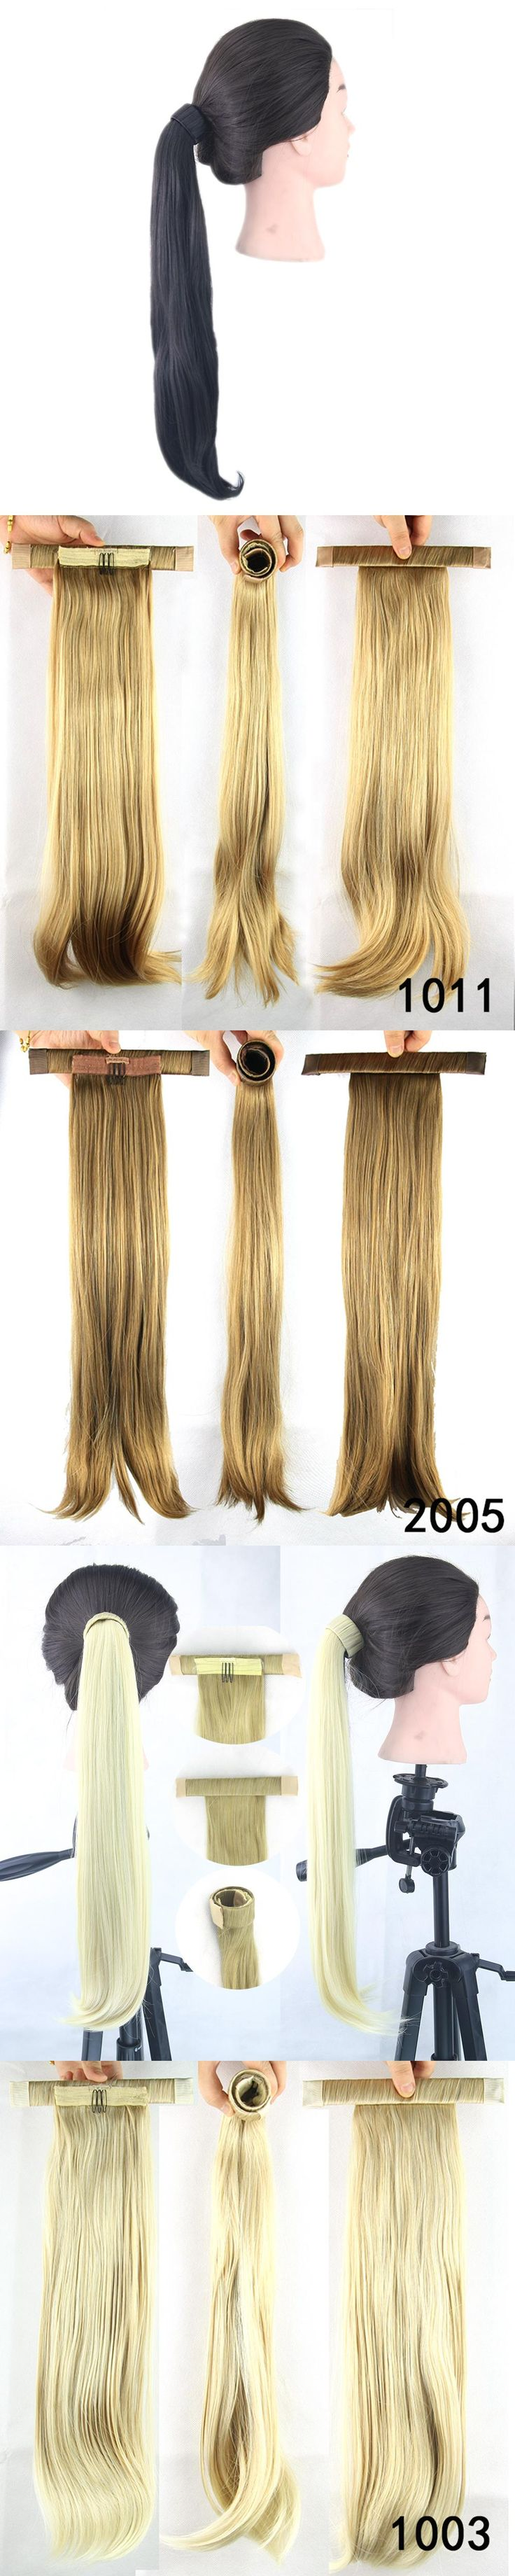 Soowee Long High Temperature Fiber Synthetic Hair Straight Ponytails with Hair Band Little Pony Tail Clip in Hair Extensions